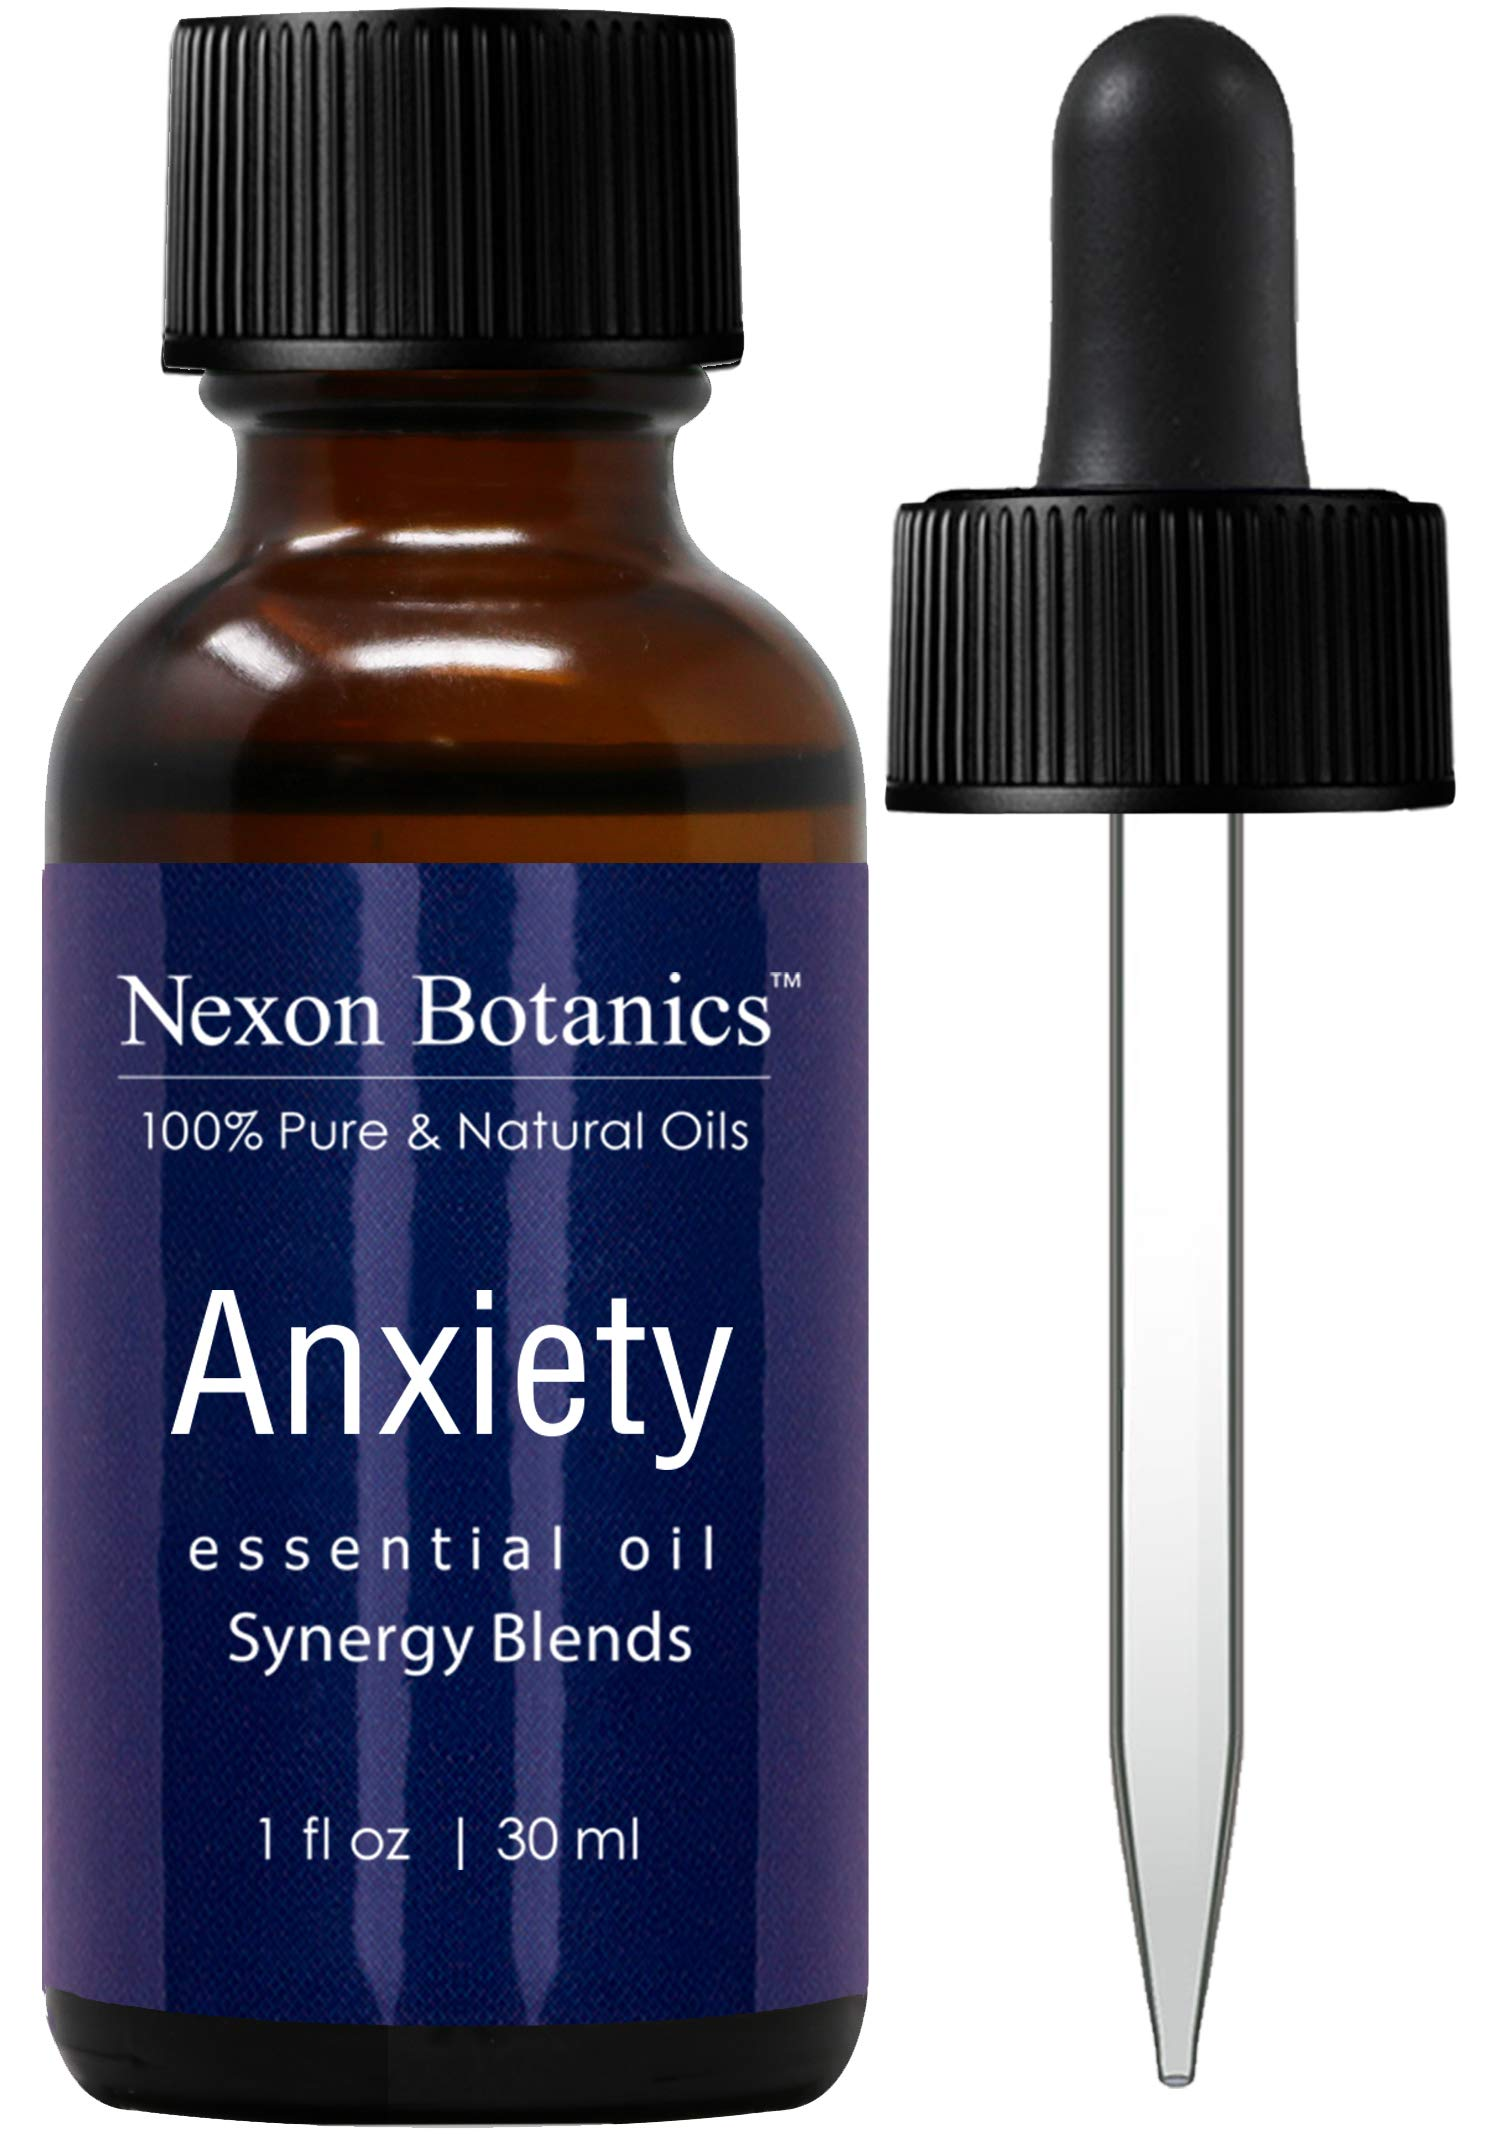 Anxiety Essential Oil Synergy Blend - 100% Pure Natural Undiluted Therapeutic Grade Blends for Aromatherapy -Helps in Depression, Tension, Stress Relief, Relaxation, Mood, Calming -Nexon Botanics 30ml